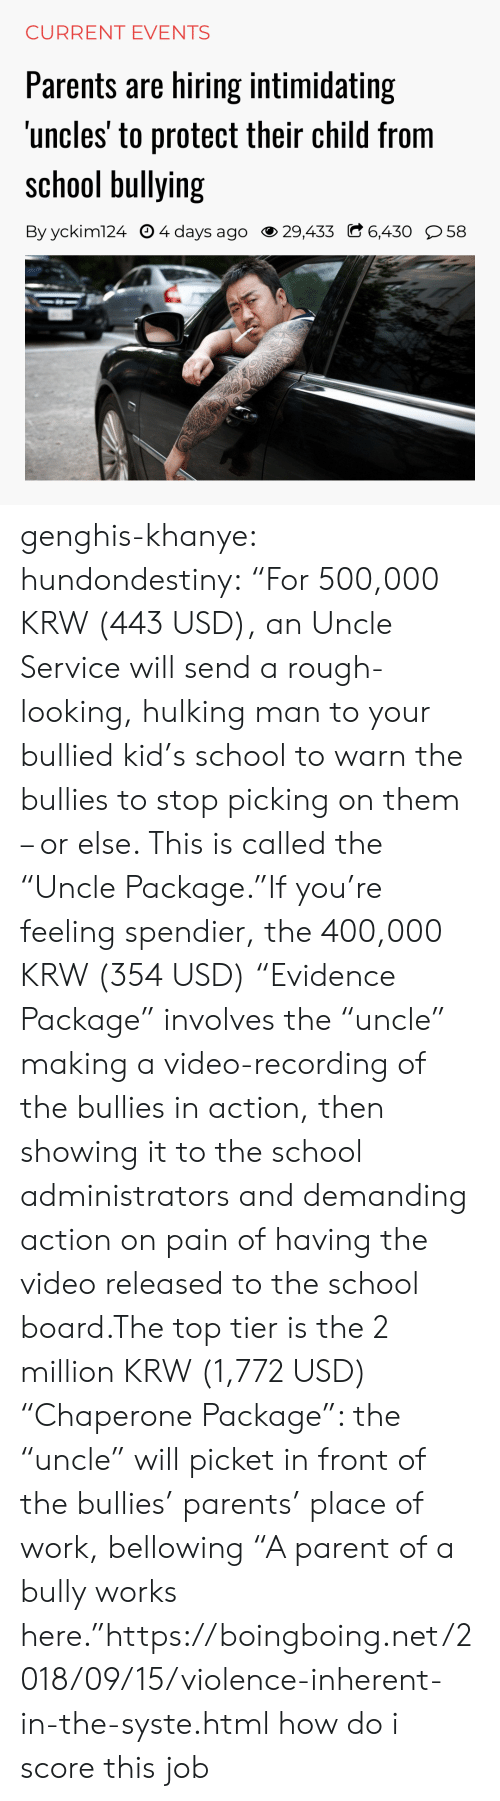 "hulking: CURRENT EVENTS  Parents are hiring intimidating  uncles' to protect their child from  school bullying  By yckim124 O 4 days ago 29,433 C 6,430 58 genghis-khanye: hundondestiny: ""For 500,000 KRW (443 USD), an Uncle Service will send a rough-looking, hulking man to your bullied kid's school to warn the bullies to stop picking on them – or else. This is called the ""Uncle Package.""If you're feeling spendier, the 400,000 KRW (354 USD) ""Evidence Package"" involves the ""uncle"" making a video-recording of the bullies in action, then showing it to the school administrators and demanding action on pain of having the video released to the school board.The top tier is the 2 million KRW (1,772 USD) ""Chaperone Package"": the ""uncle"" will picket in front of the bullies' parents' place of work, bellowing ""A parent of a bully works here.""https://boingboing.net/2018/09/15/violence-inherent-in-the-syste.html  how do i score this job"